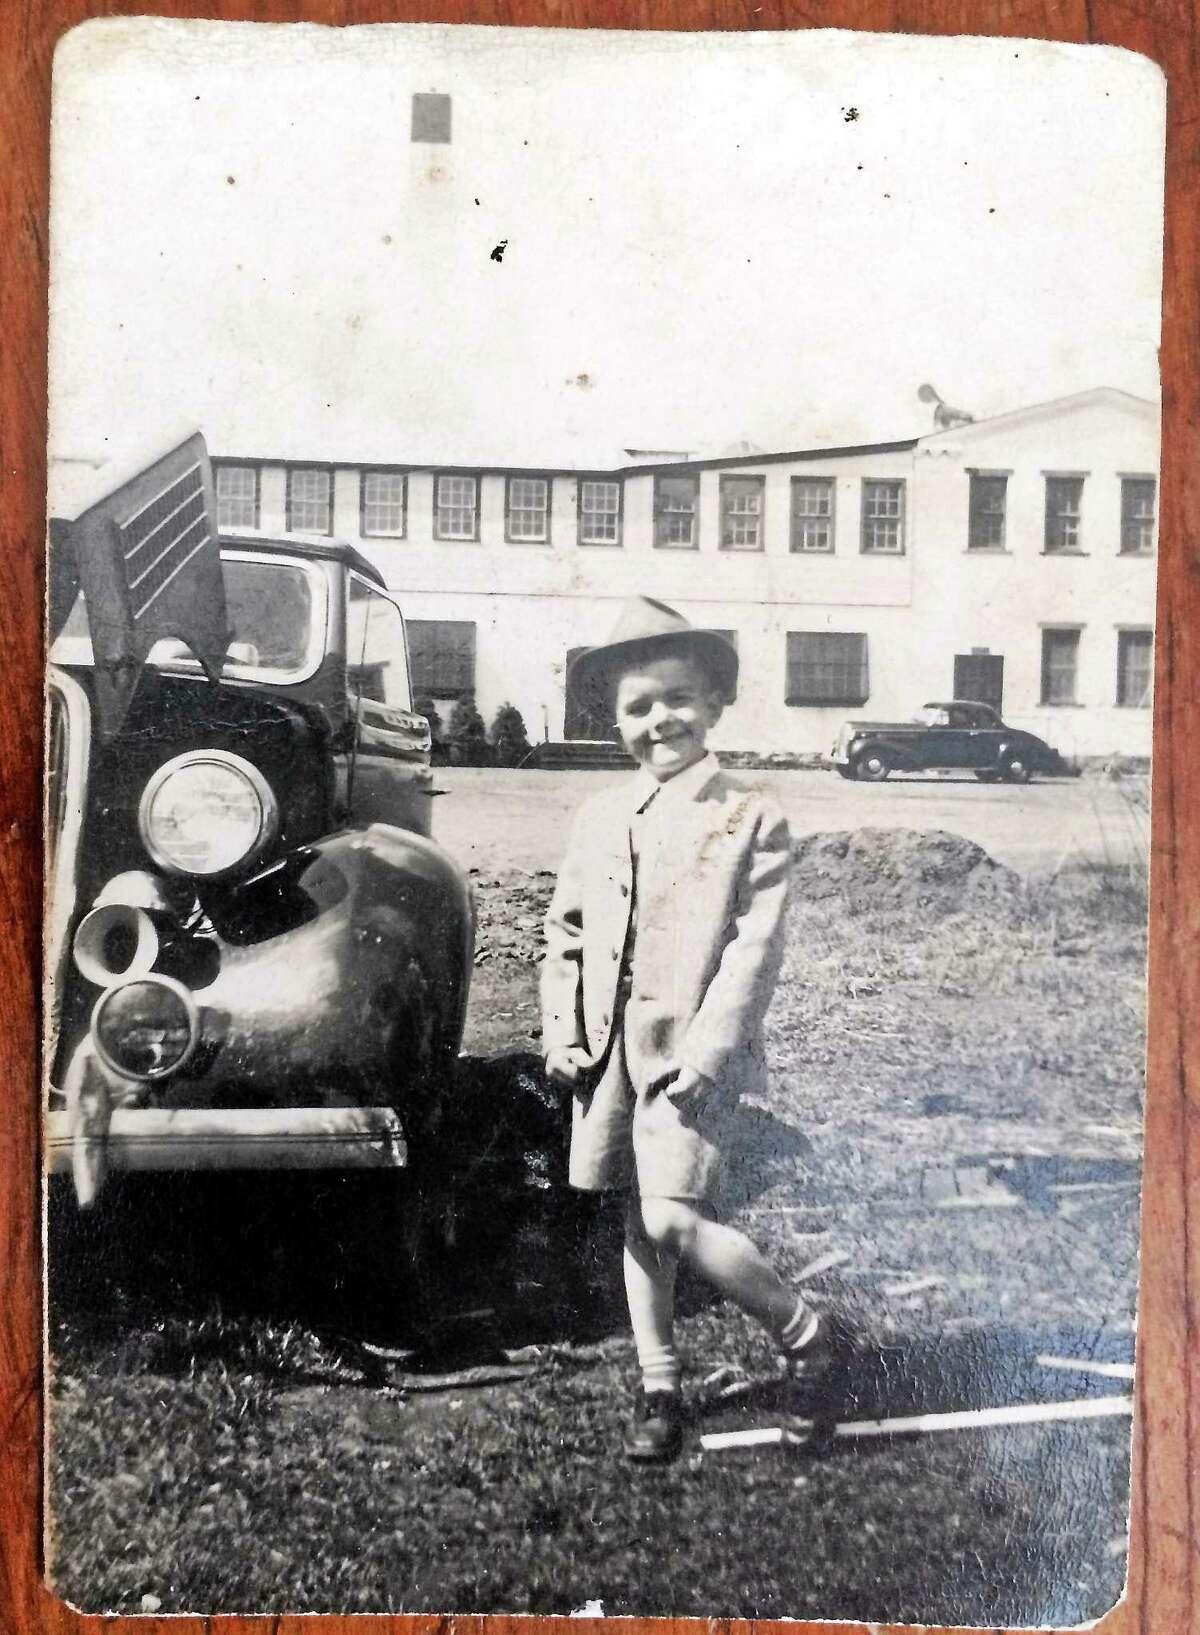 Carl Balestracci as a young lad at 66 High St. in Guilford when it was New Haven Watch.